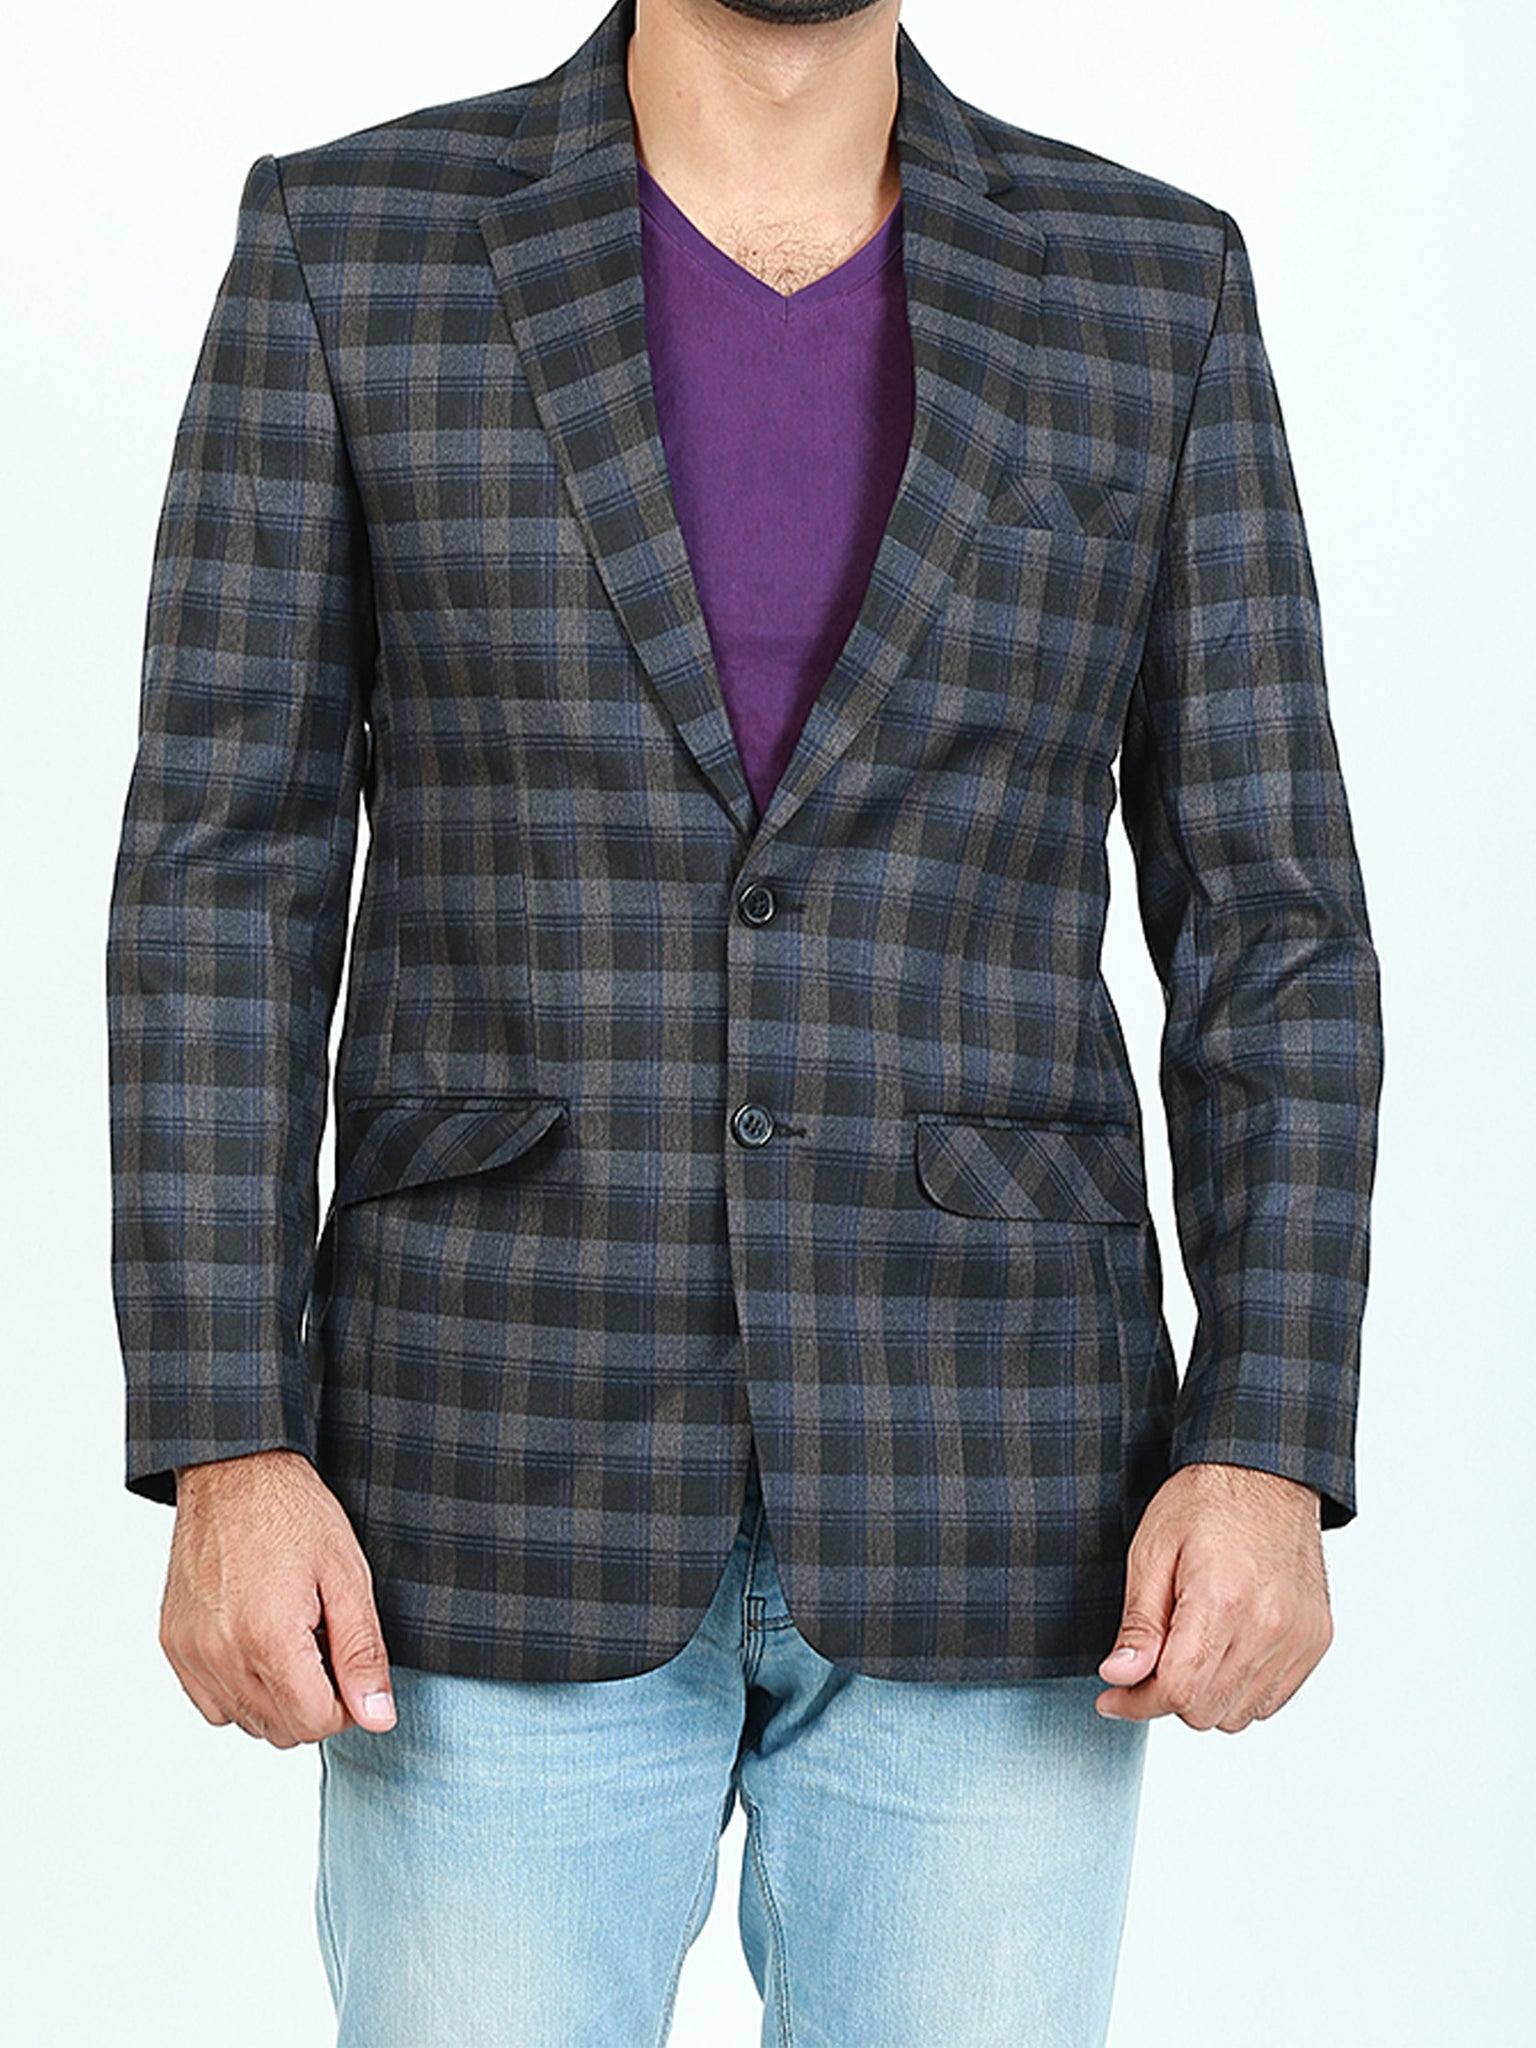 Men Casual Coat Blazer 303 Checks Blue Green Dusk